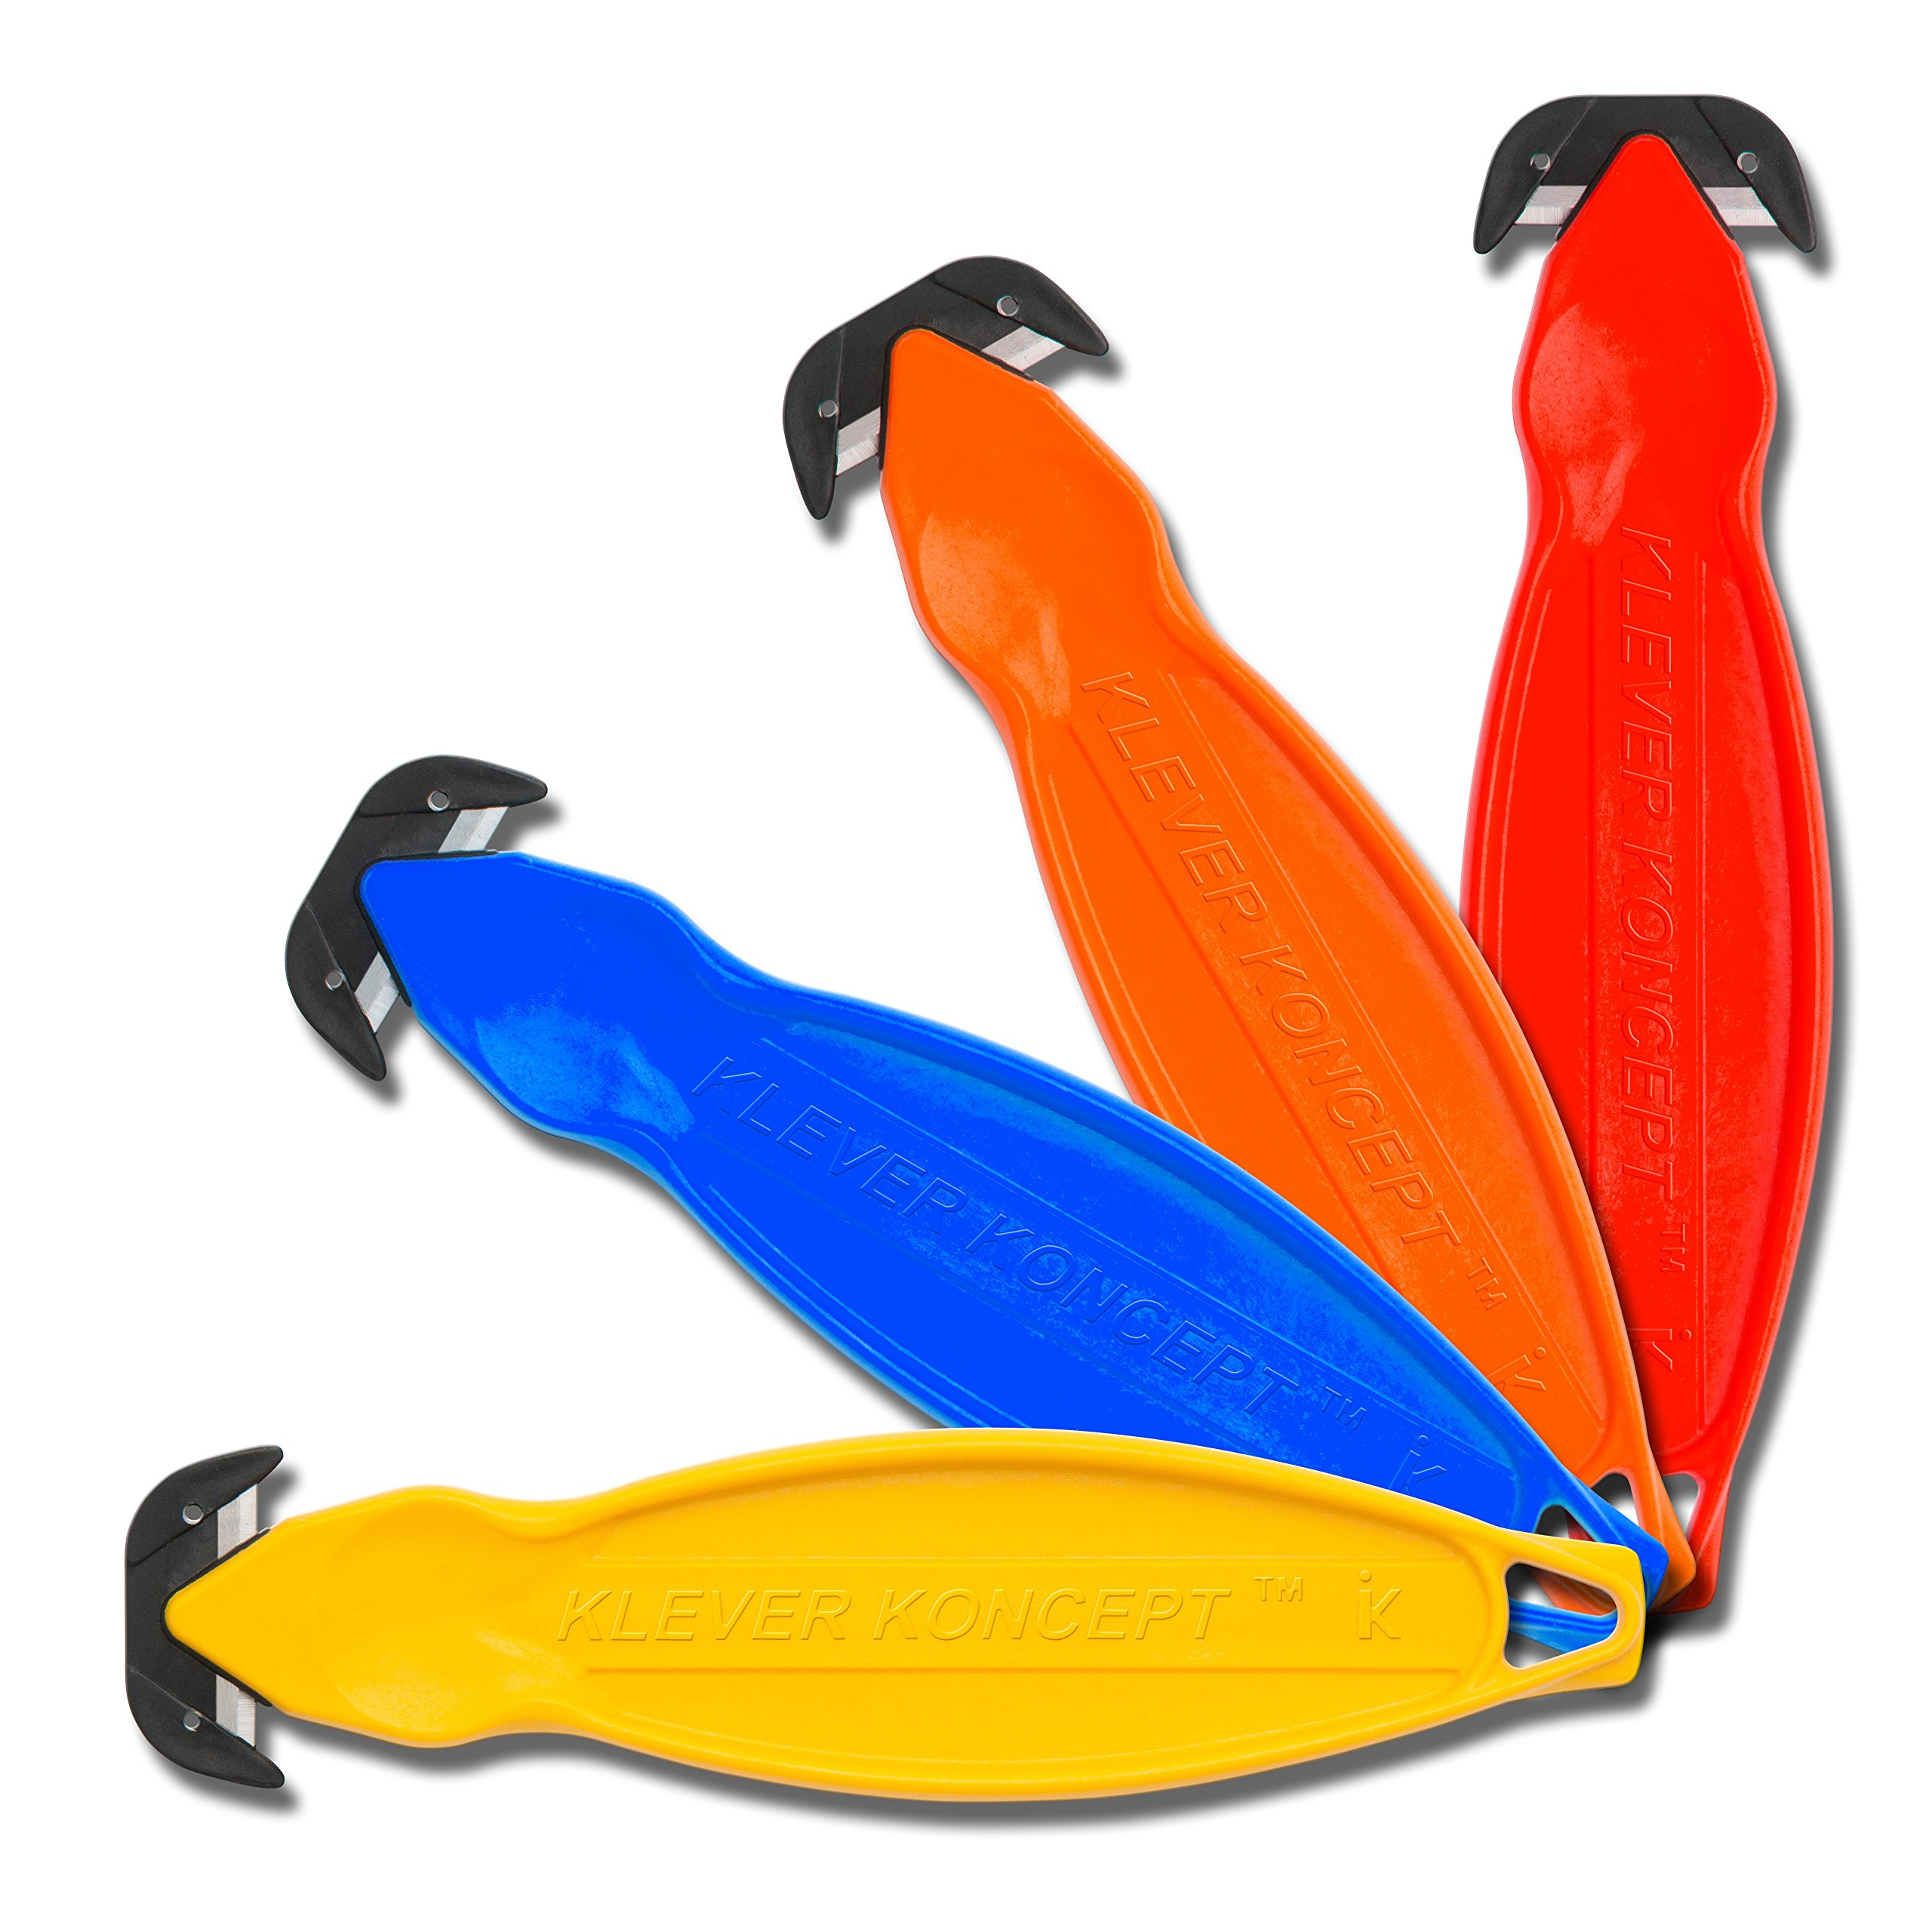 Klever Koncept Safety Cutters, Assorted Colors, Pack Of 50 by Klever Kutter